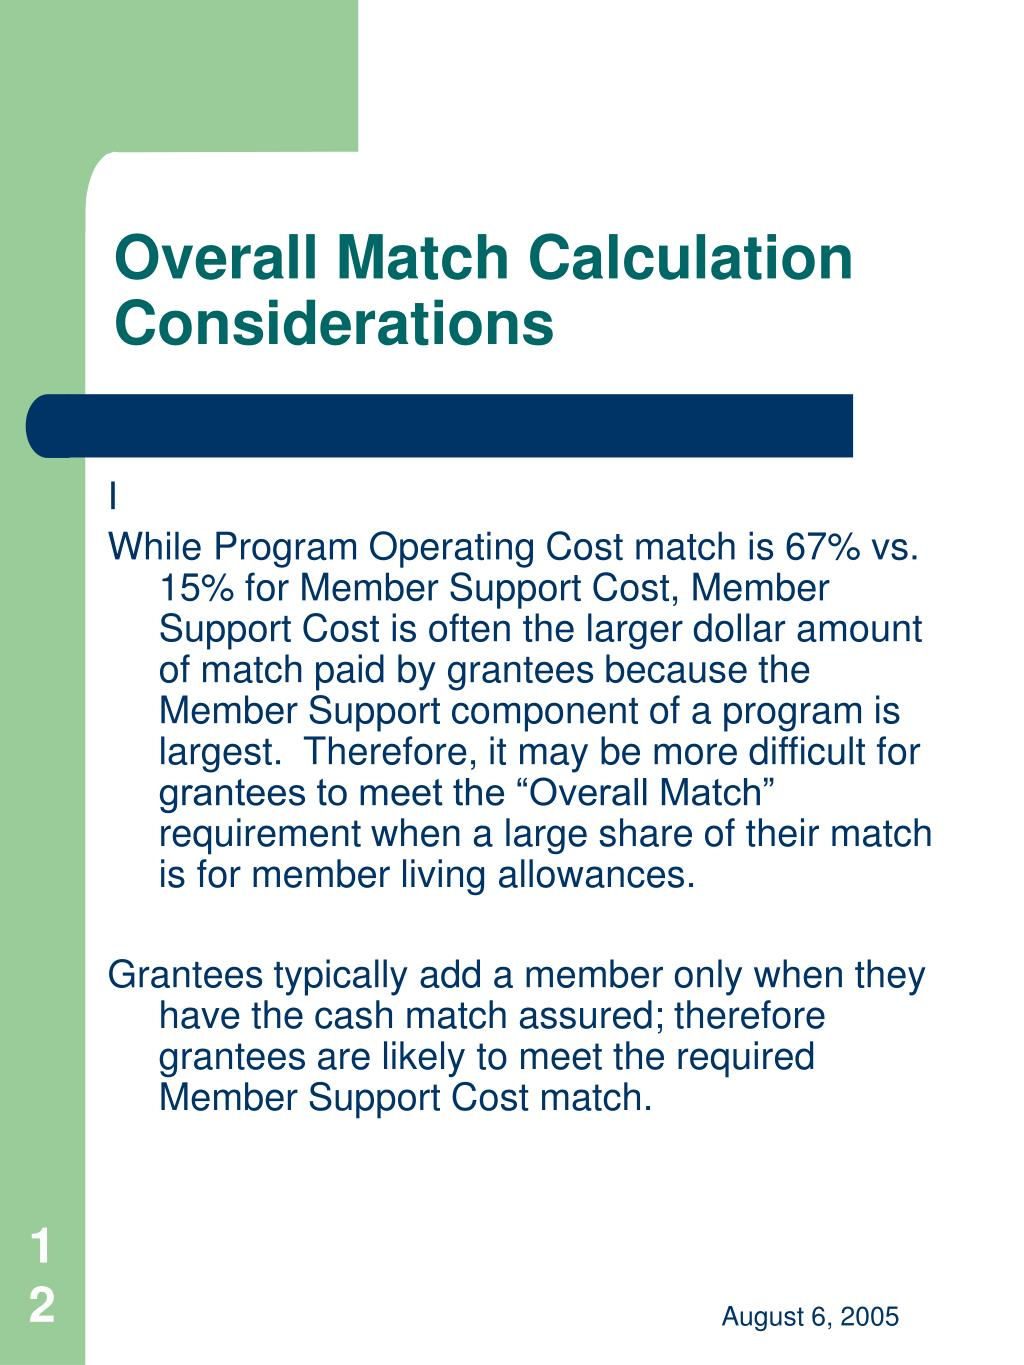 Overall Match Calculation Considerations